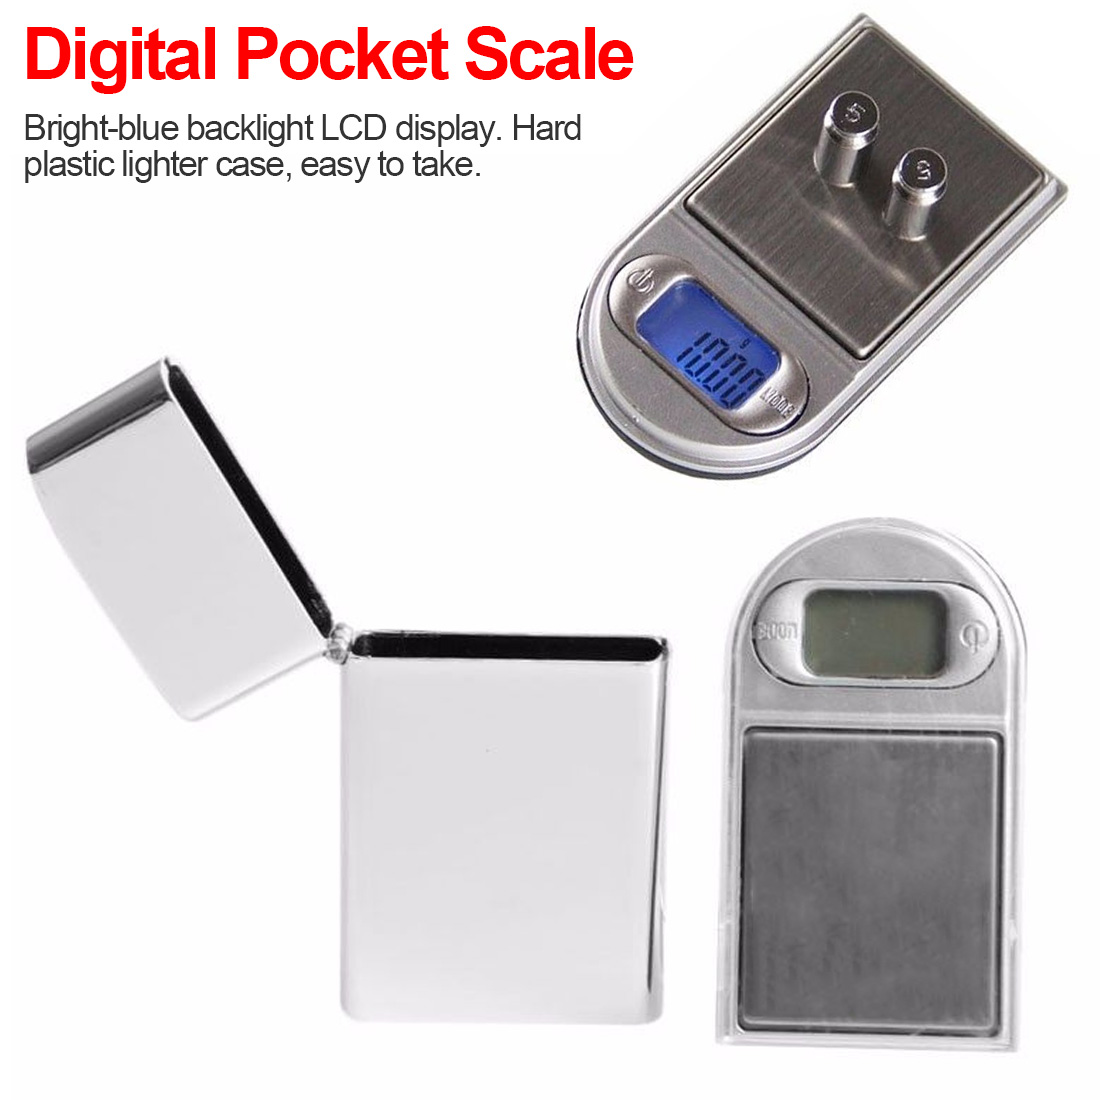 Mini <font><b>Digital</b></font> <font><b>Weight</b></font> Pocket <font><b>Scales</b></font> 200g <font><b>0.01g</b></font> LCD Display with Backlight Electric Pocket Jewerlry Gram <font><b>Weight</b></font> Balance image